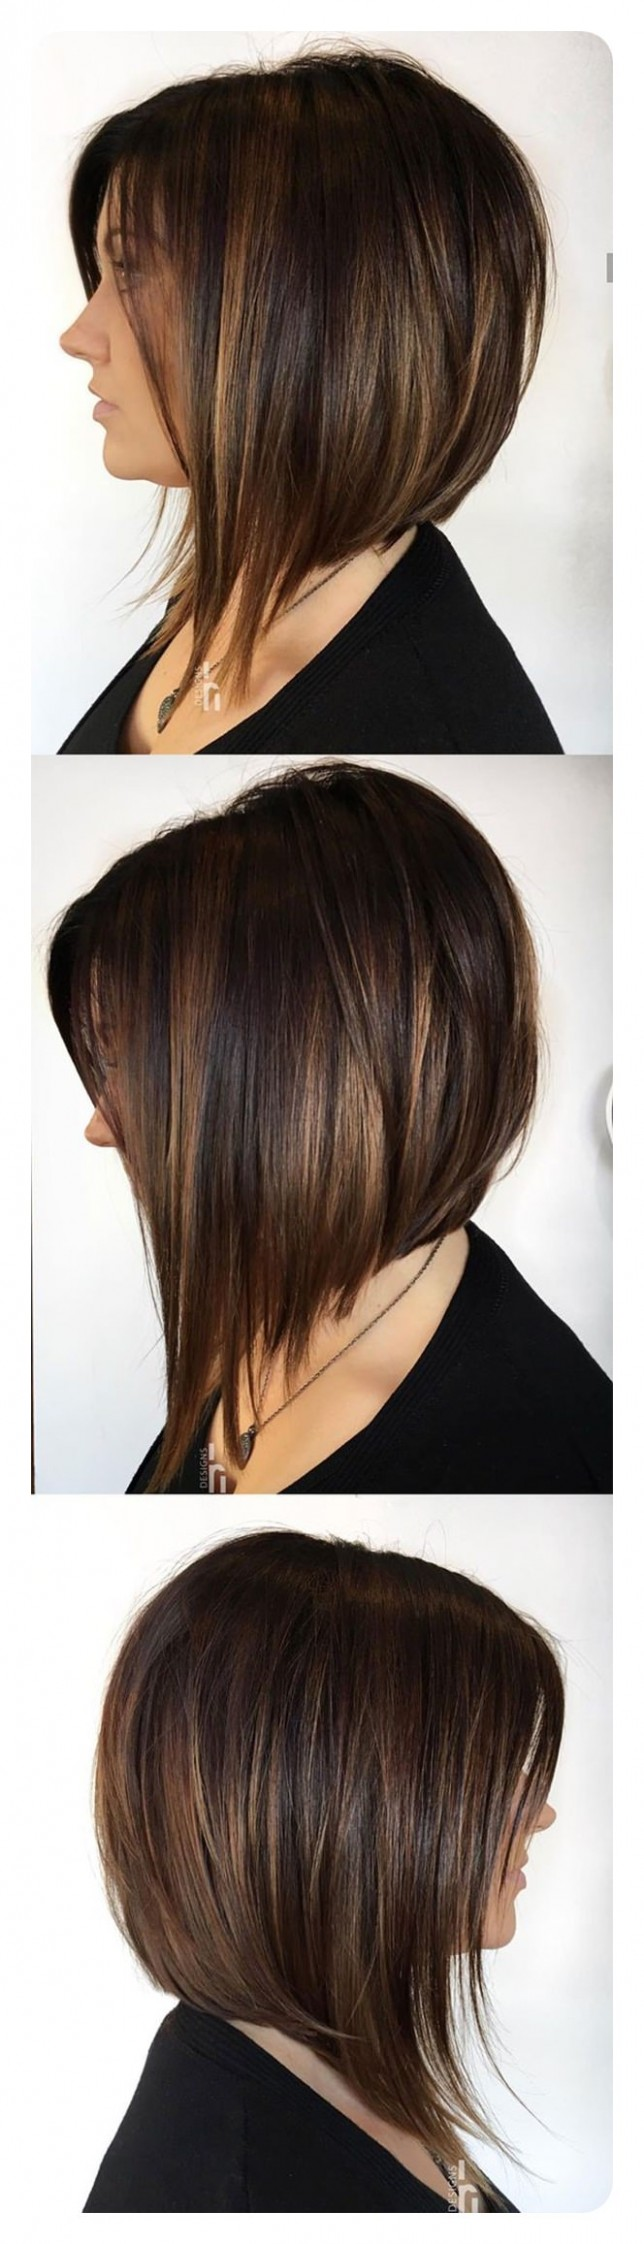 12 Layered Inverted Bob Hairstyles That You Should Try - Style Easily